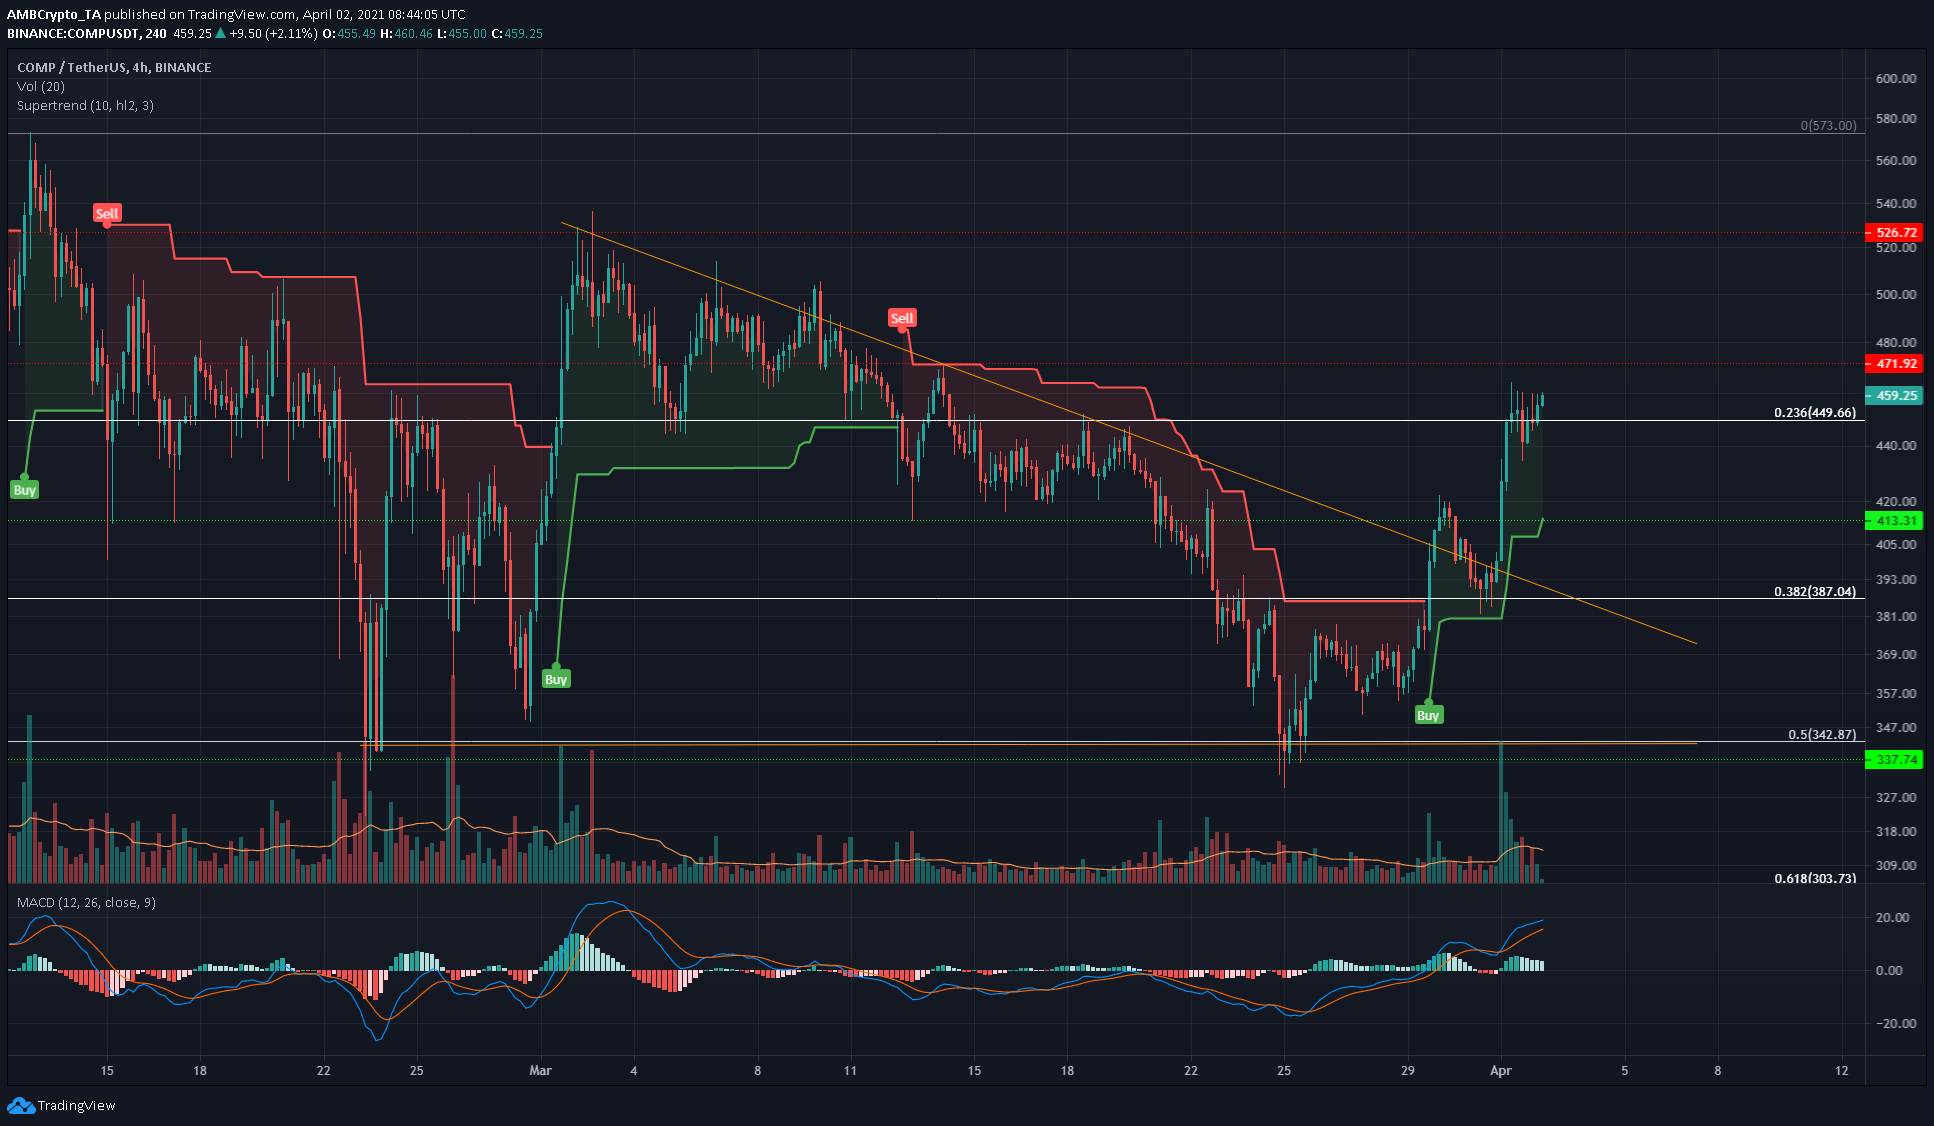 Bitcoin Cash, IOTA, Compound Price Analysis: 02 April